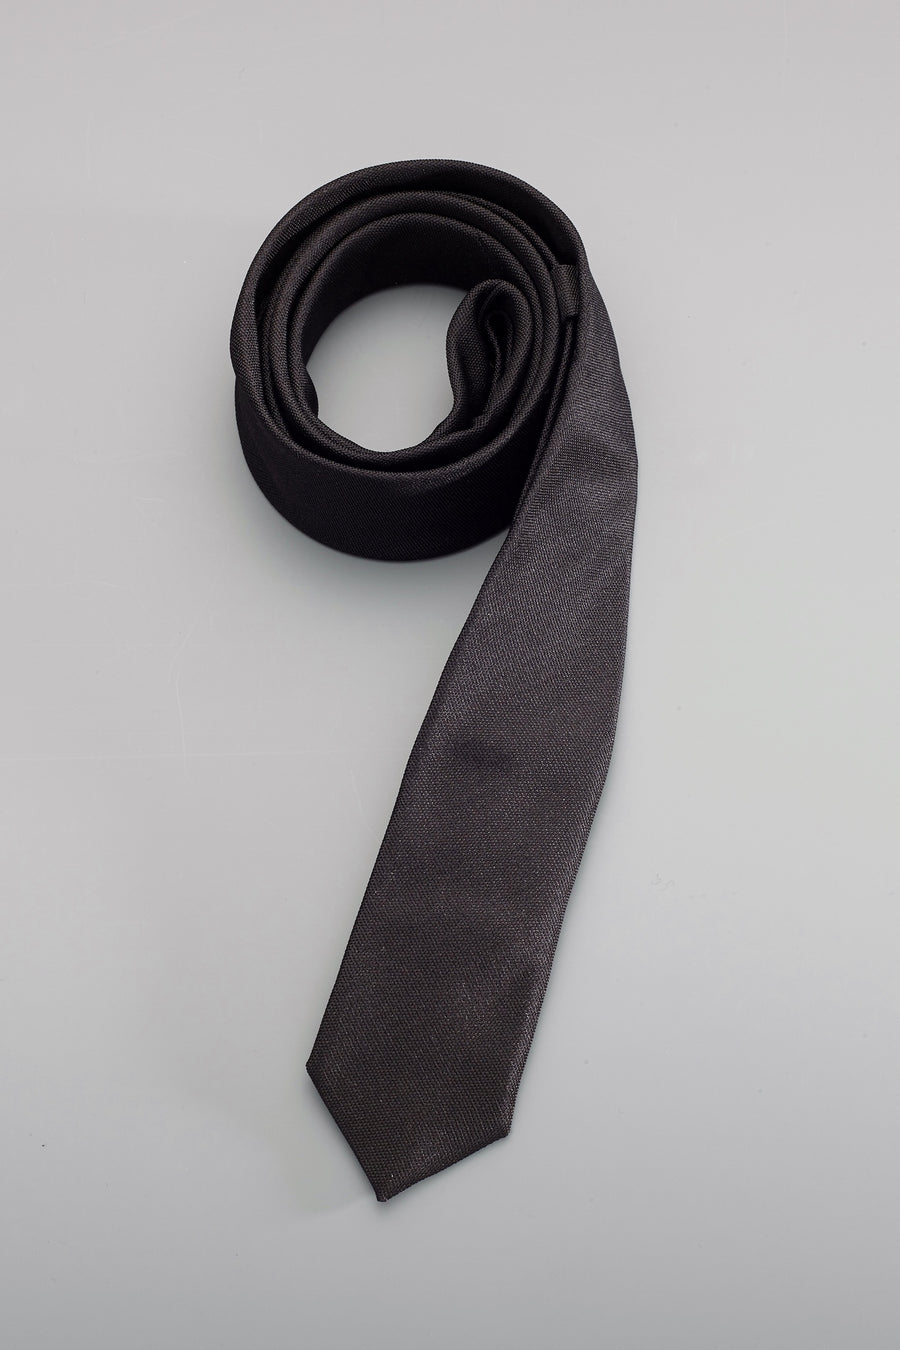 The Awe Black Skinny Tie